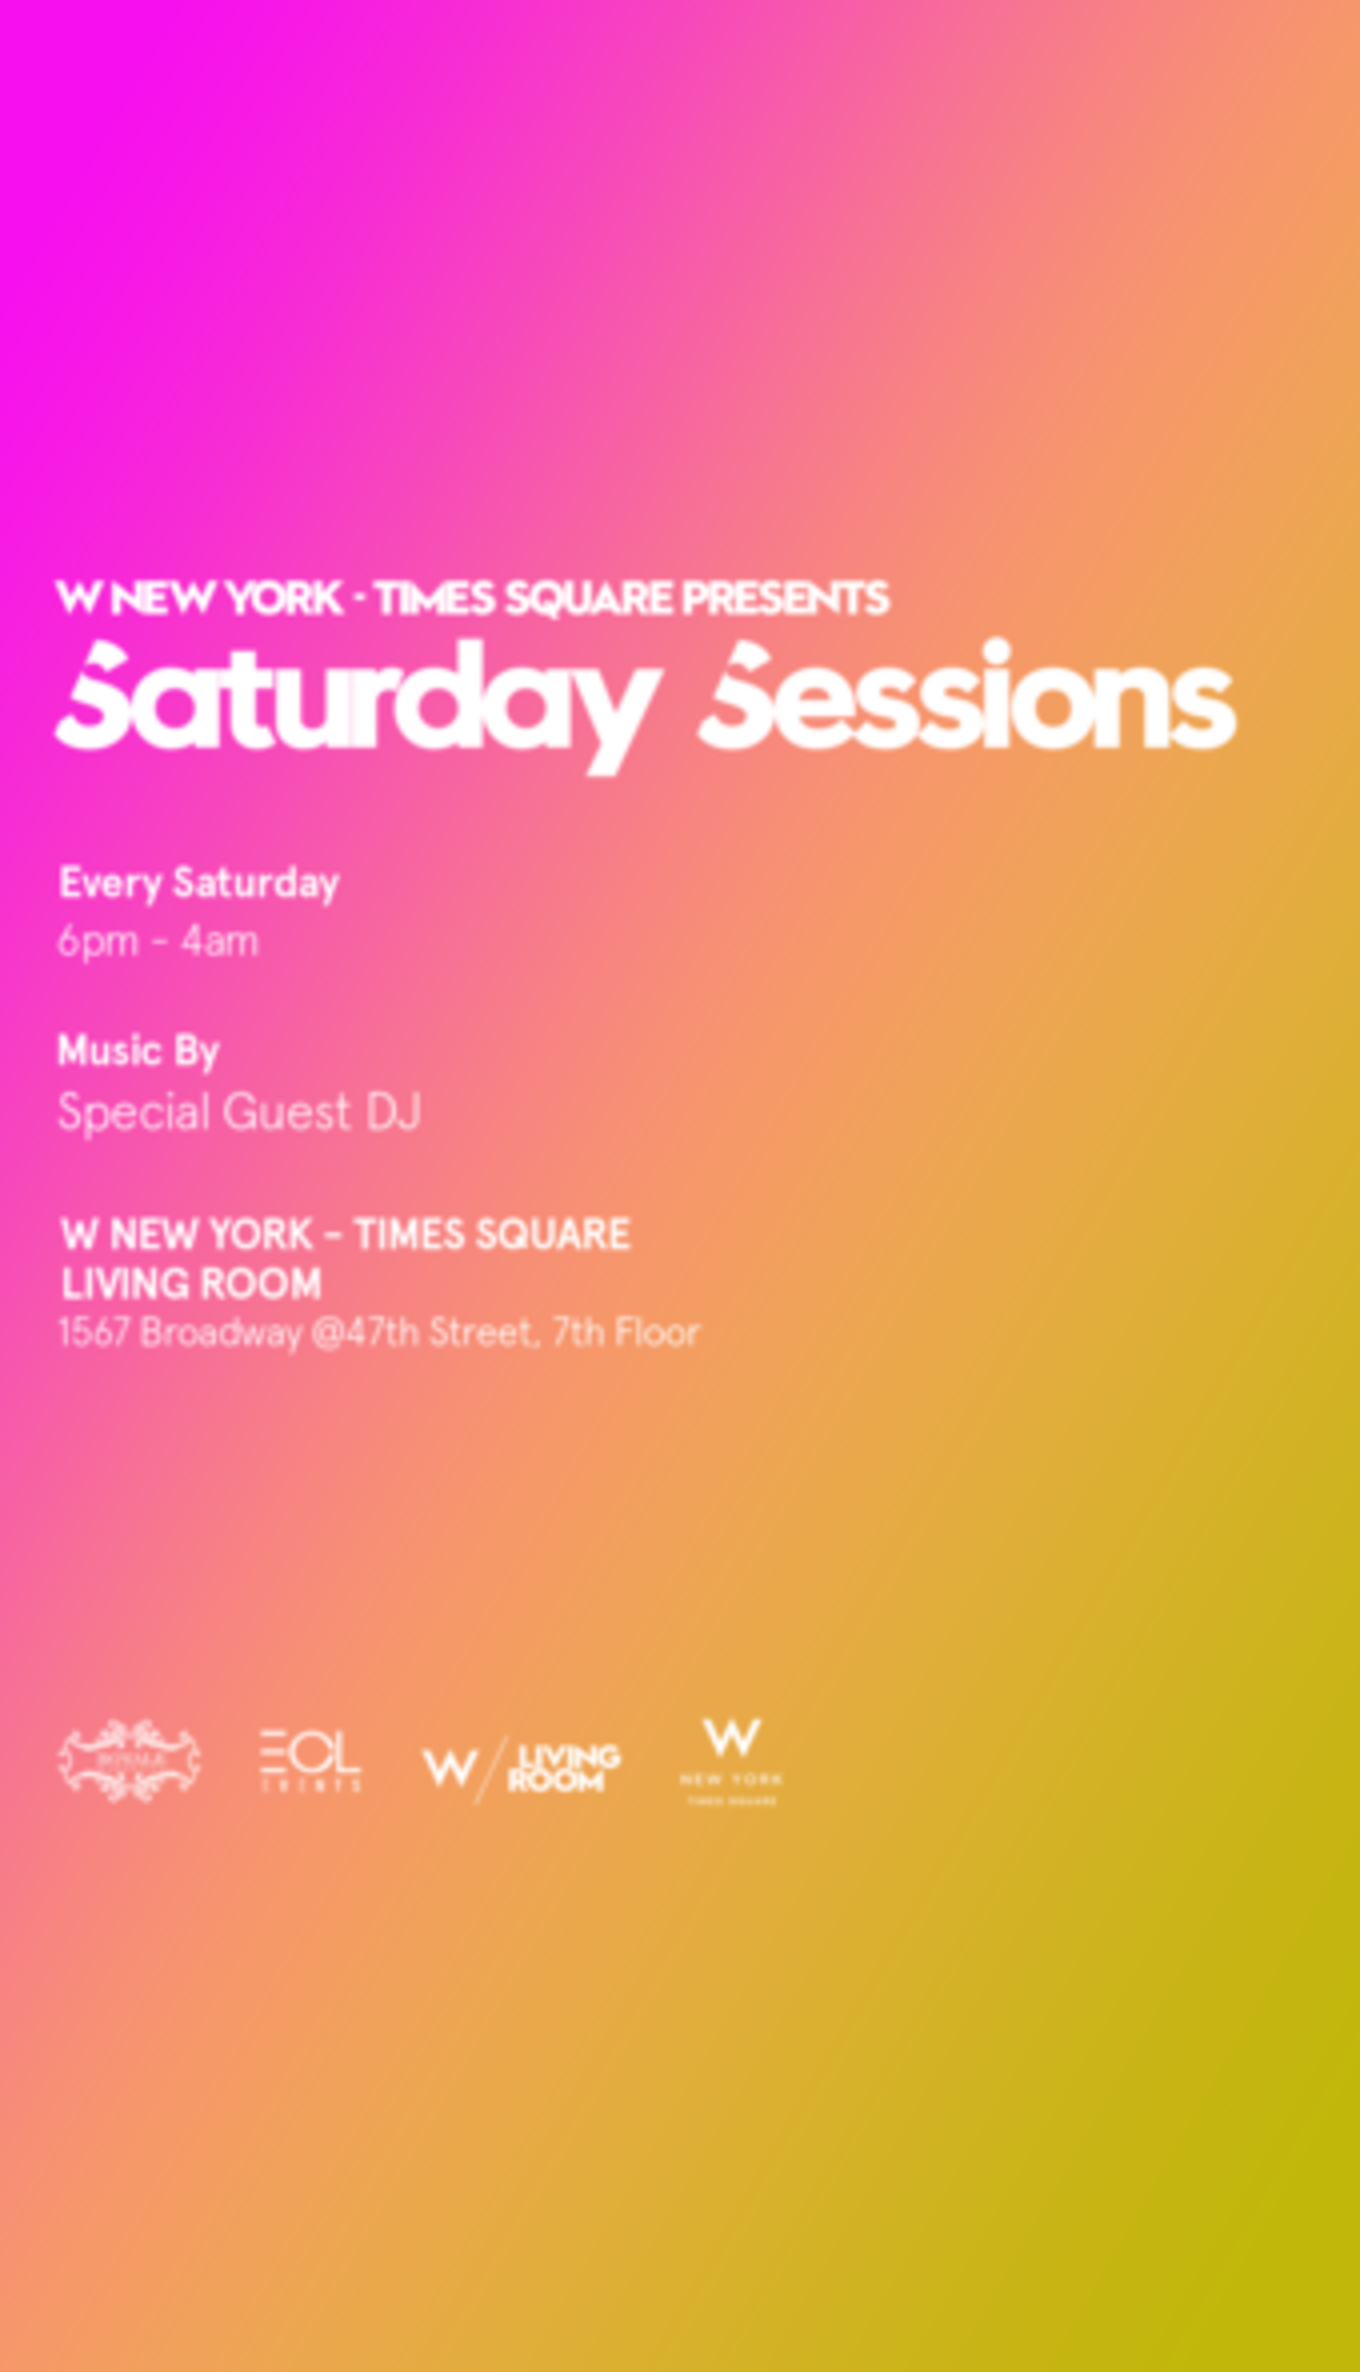 Saturdays the living room at w hotel times square - The living room at the w union square ...